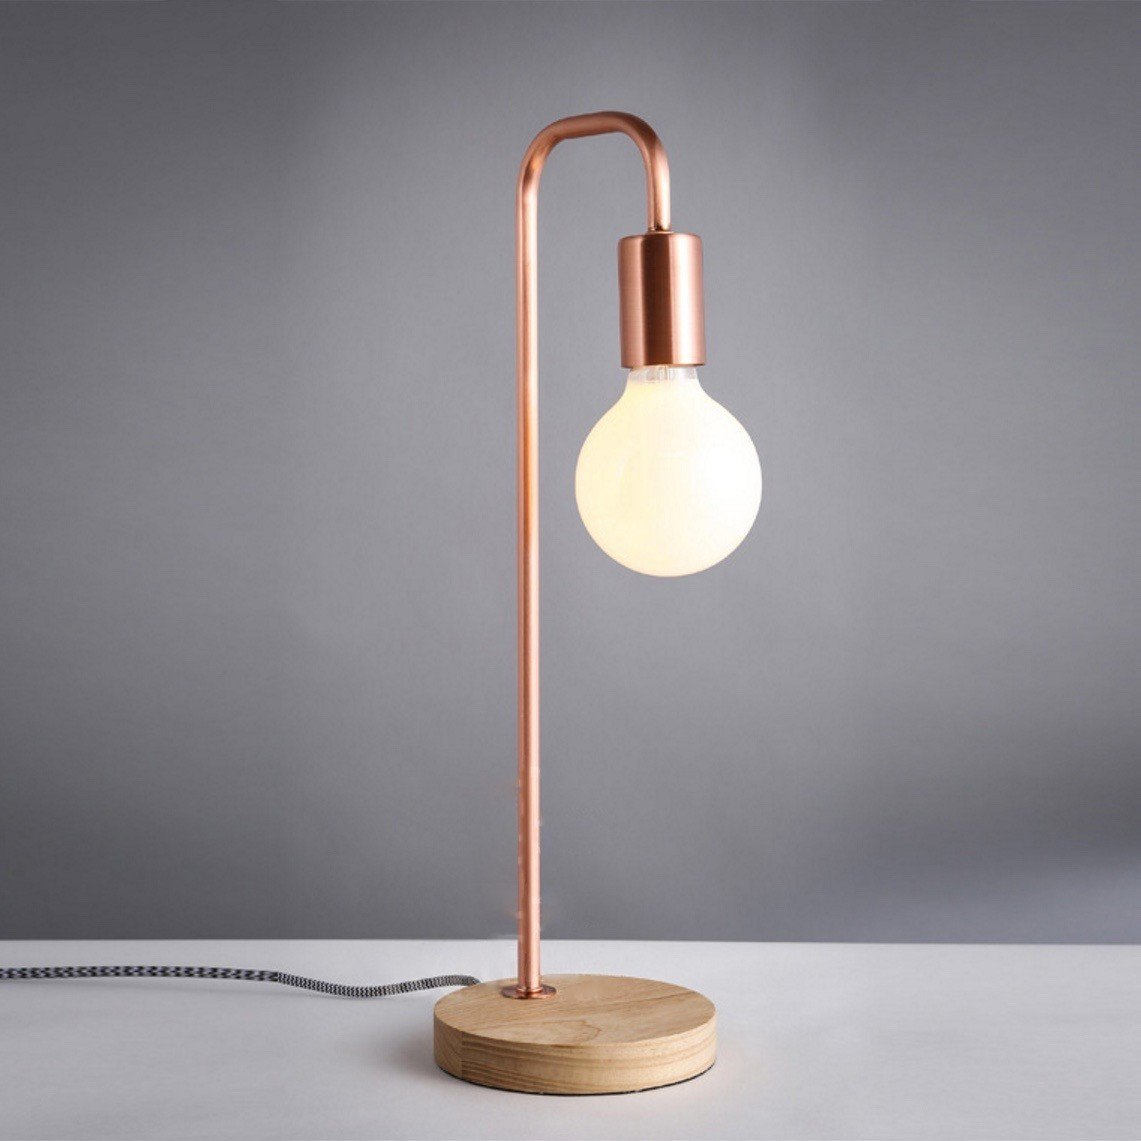 Modern Table Lamps retro modern table lamp OYRMLRE